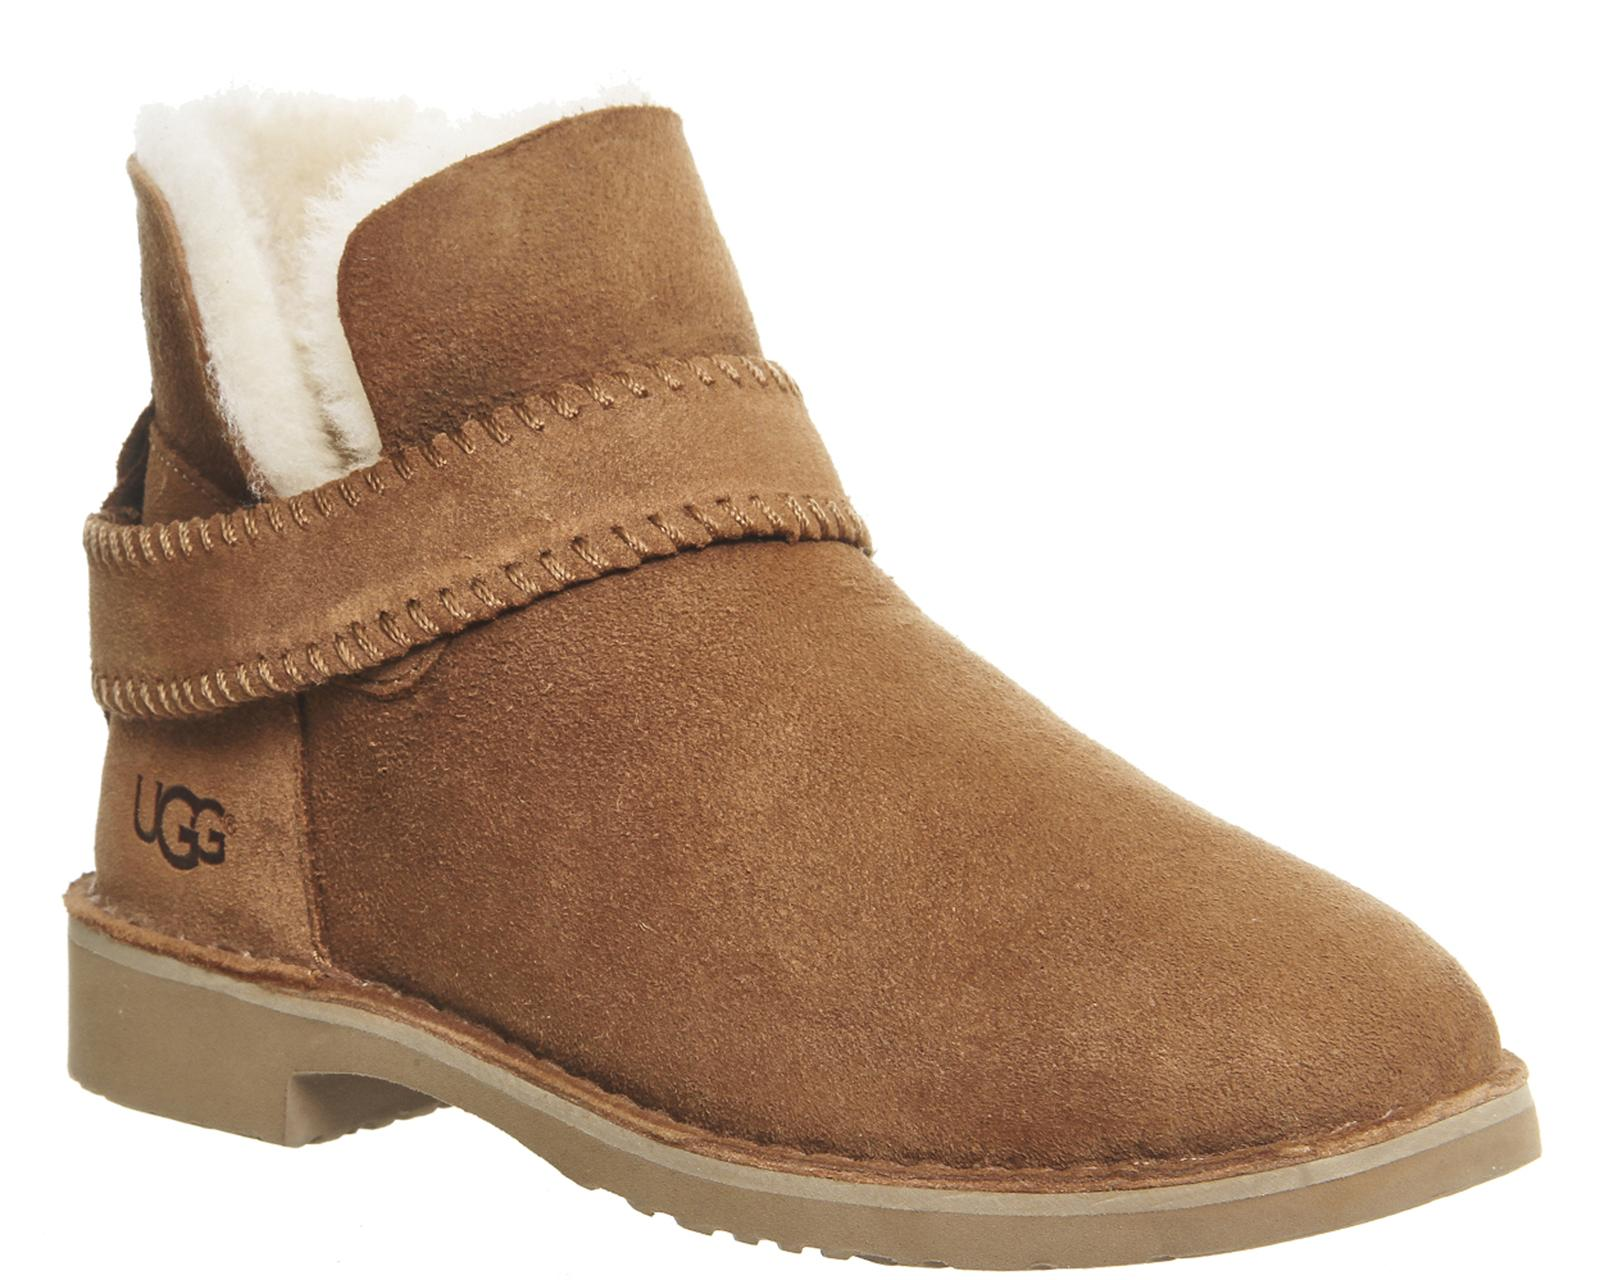 Ugg Mckay Strap Boots ...